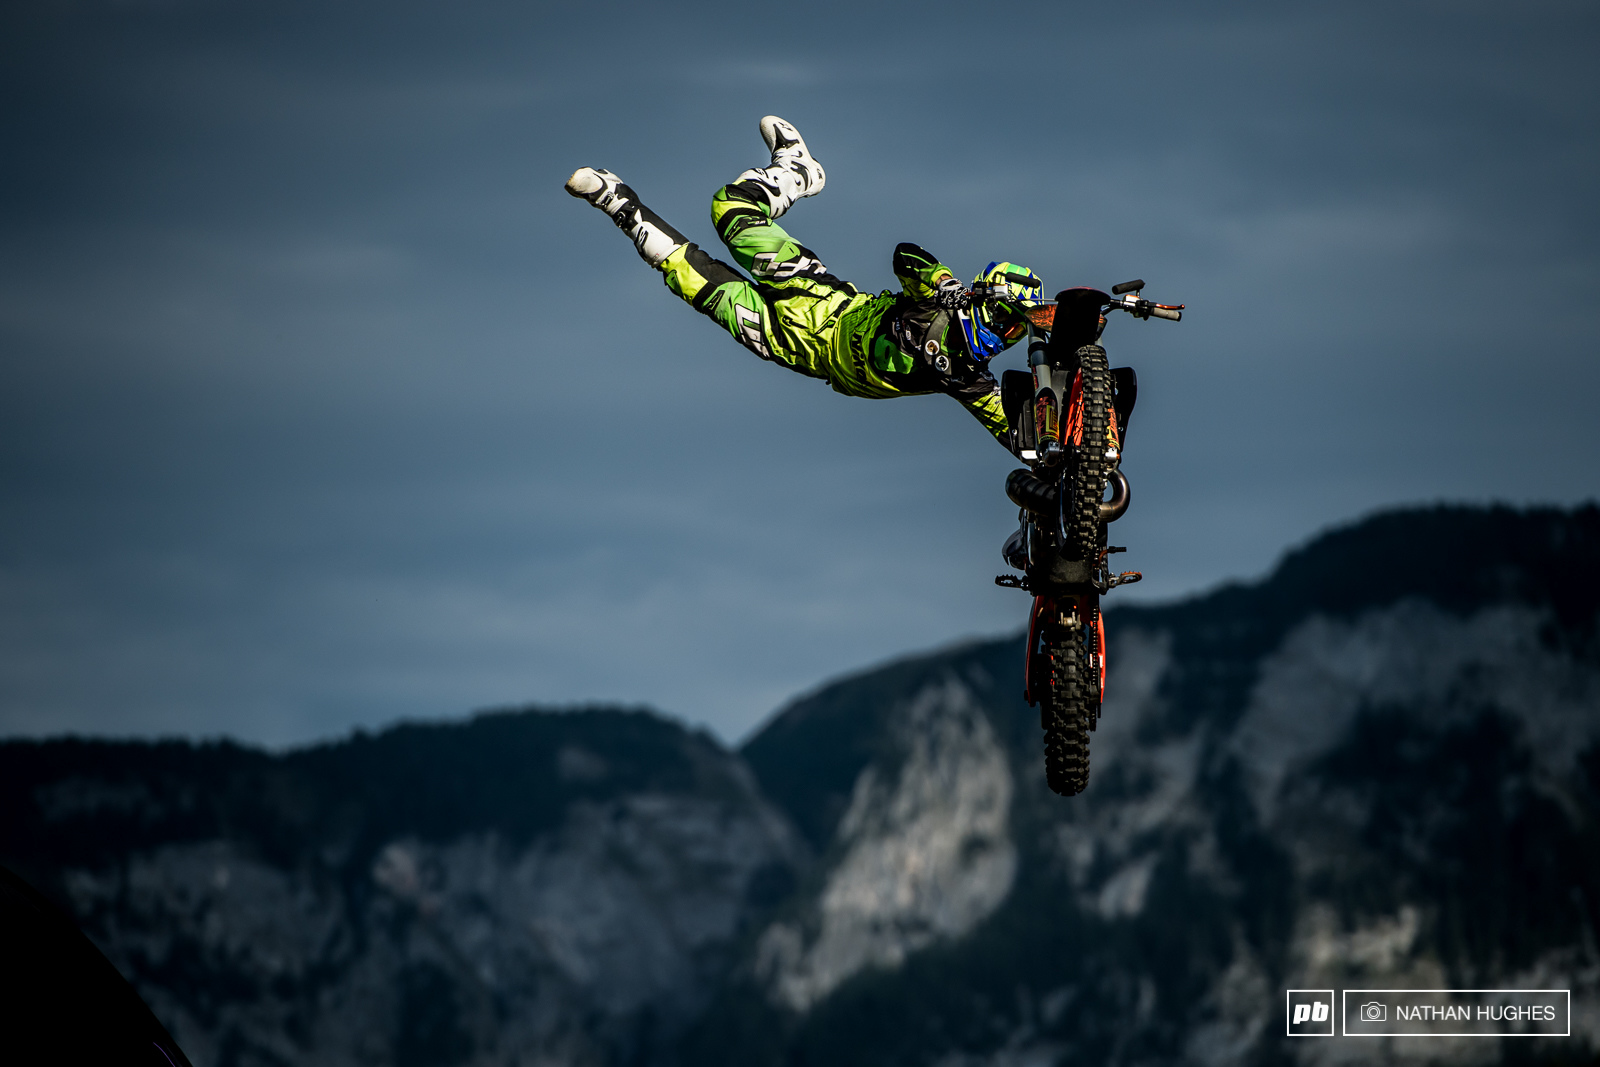 Some solid finish jump inspiration for any riders crashing on their race runs this Sunday...